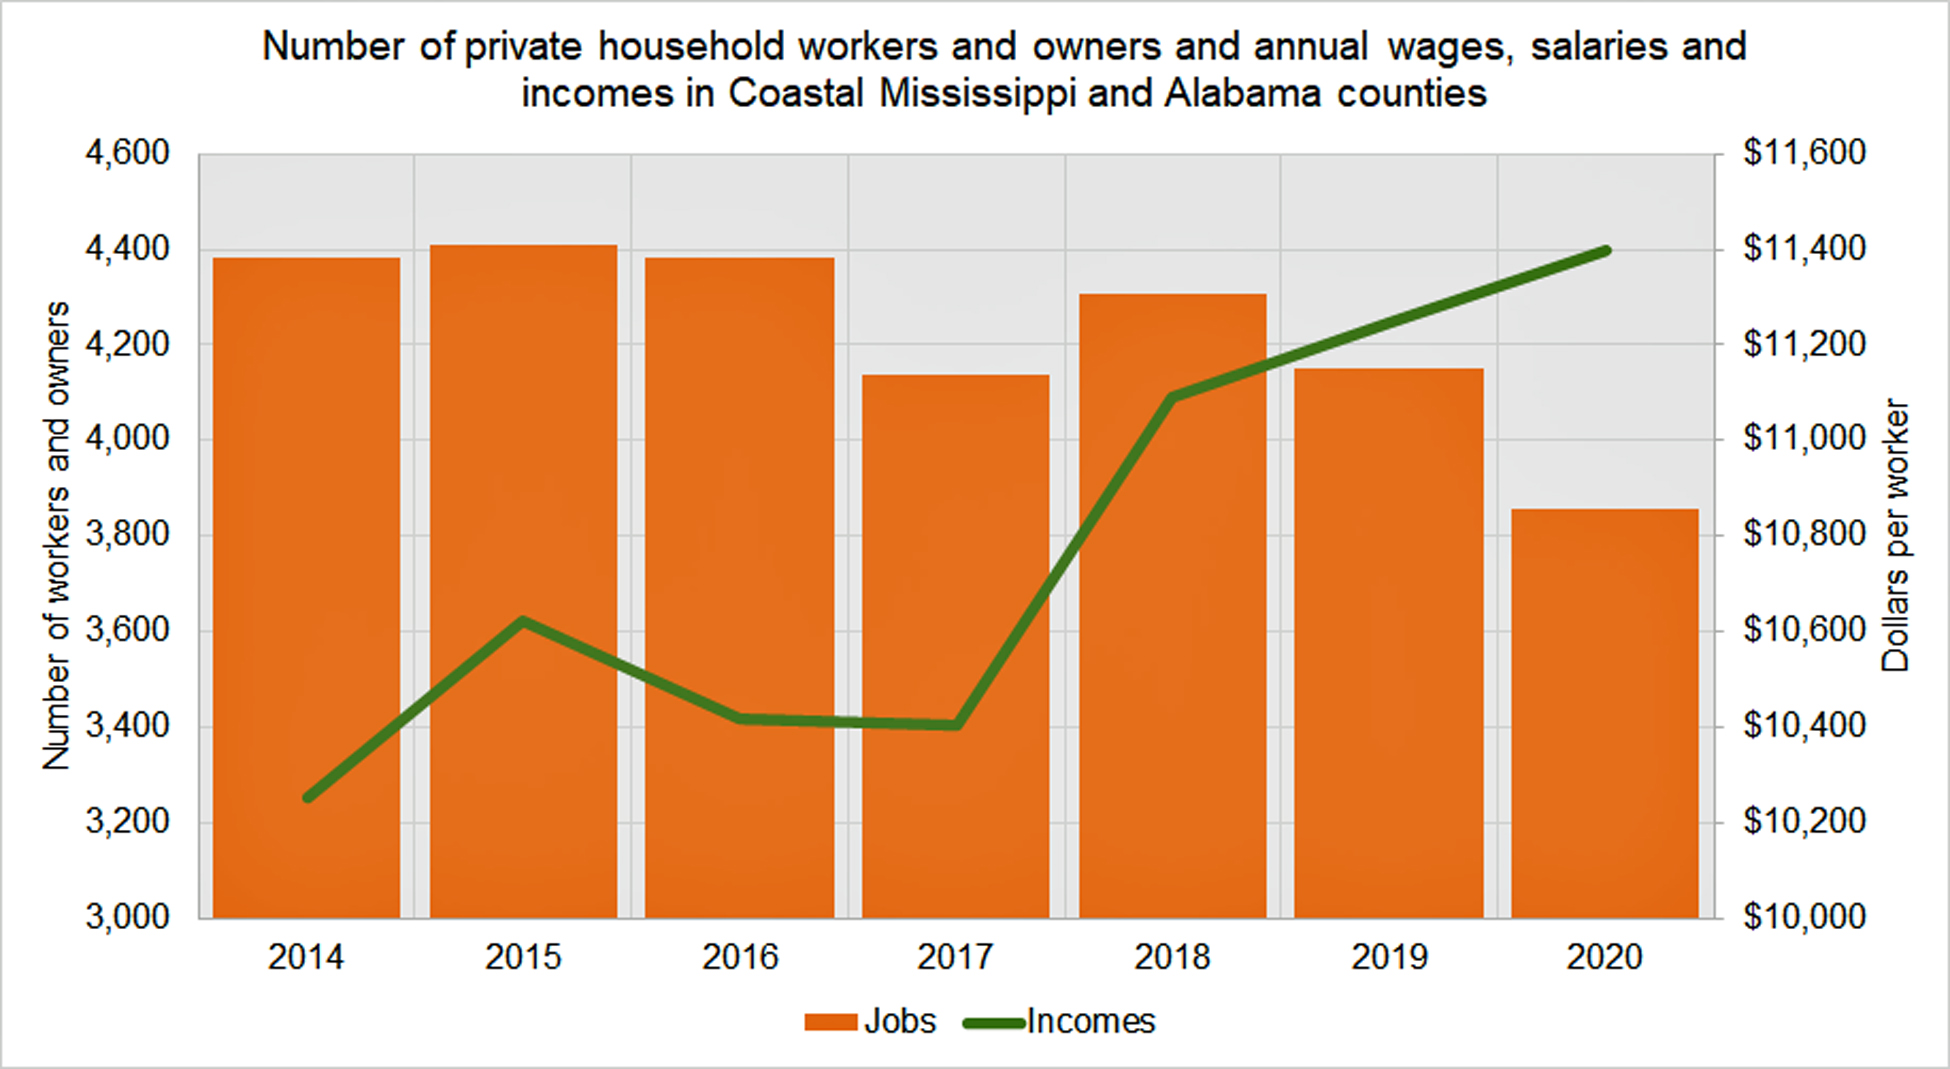 number_of_workers_and_owners_of_private_households_in_coastal_ms_and_al.jpg